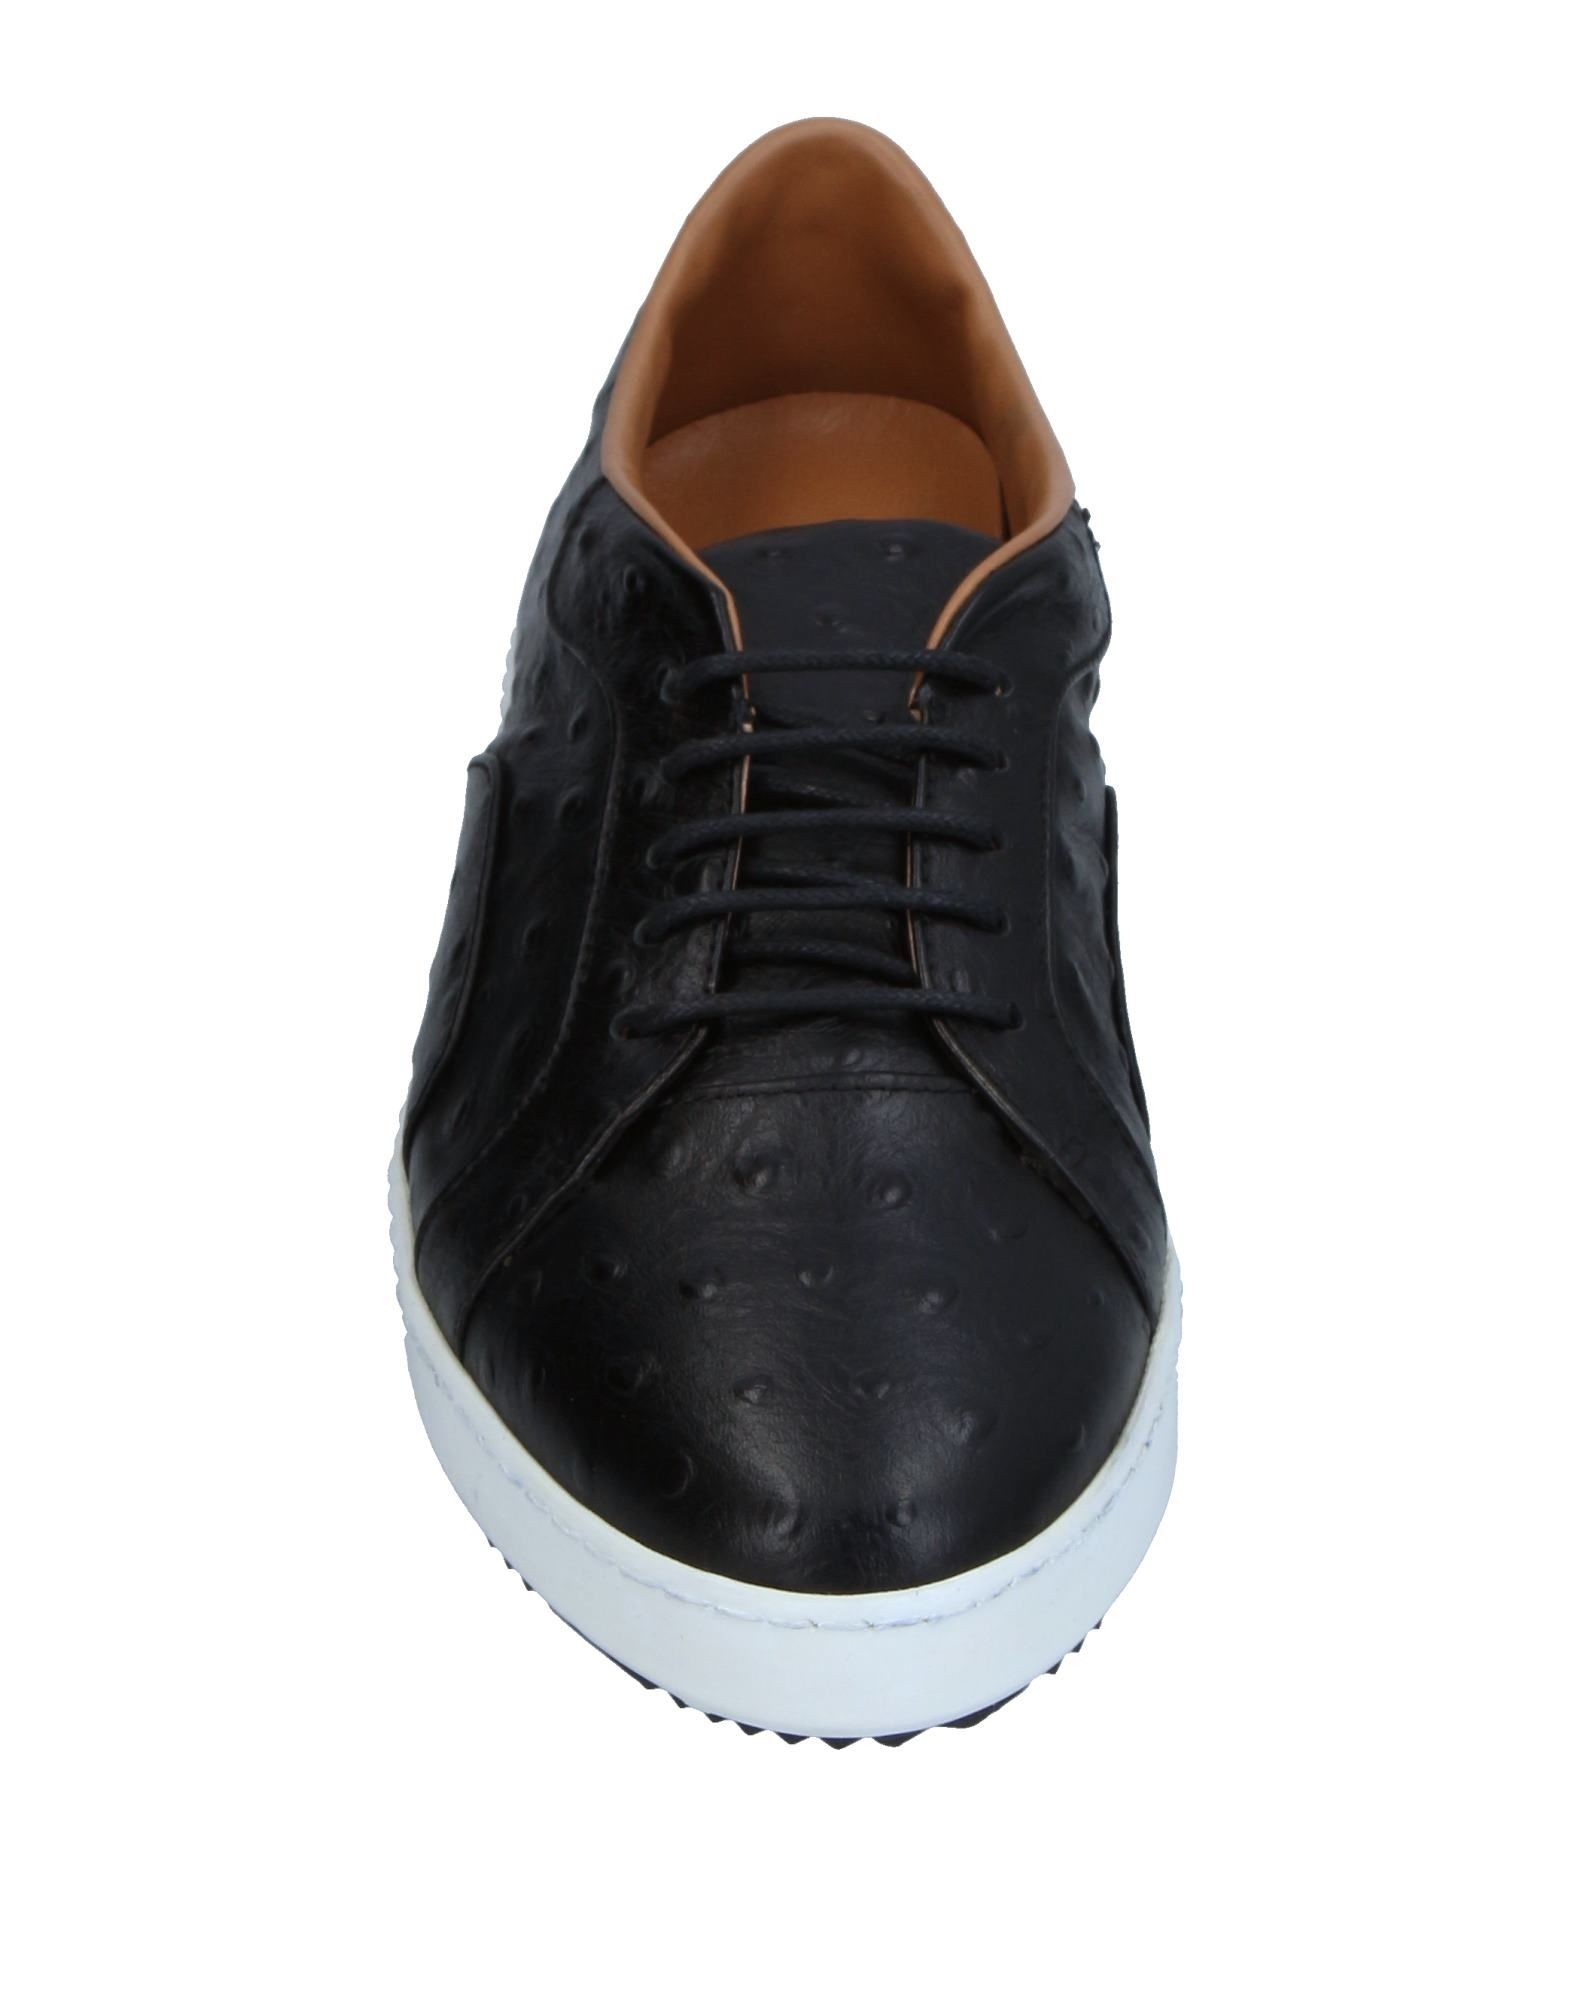 Sneakers Raoul Femme - Sneakers Raoul sur